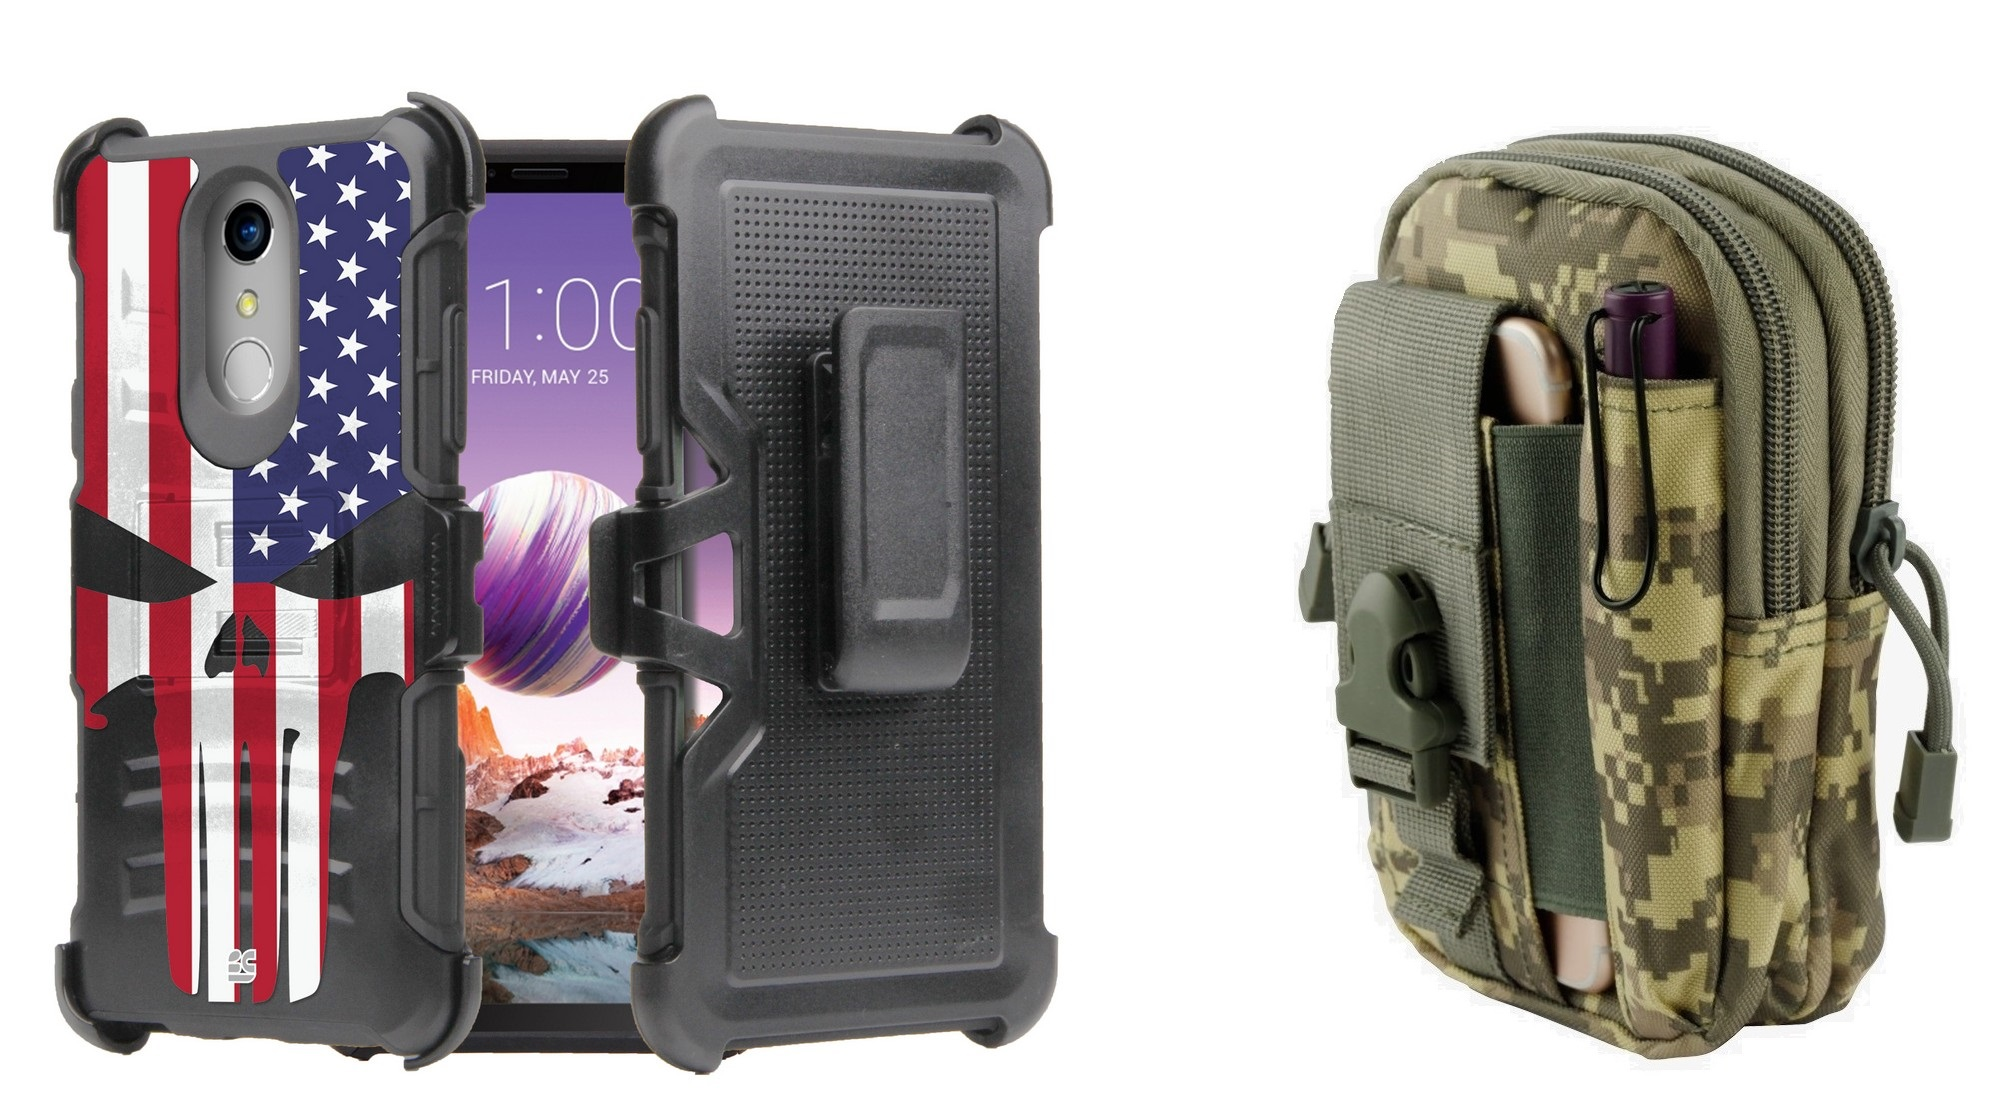 Dual Layer Heavy Duty Armor Kickstand Holster Rugged Case (American Skull  Flag) with ACU Camo Tactical EDC MOLLE Utility Waist Pack Holder Pouch,  Atom